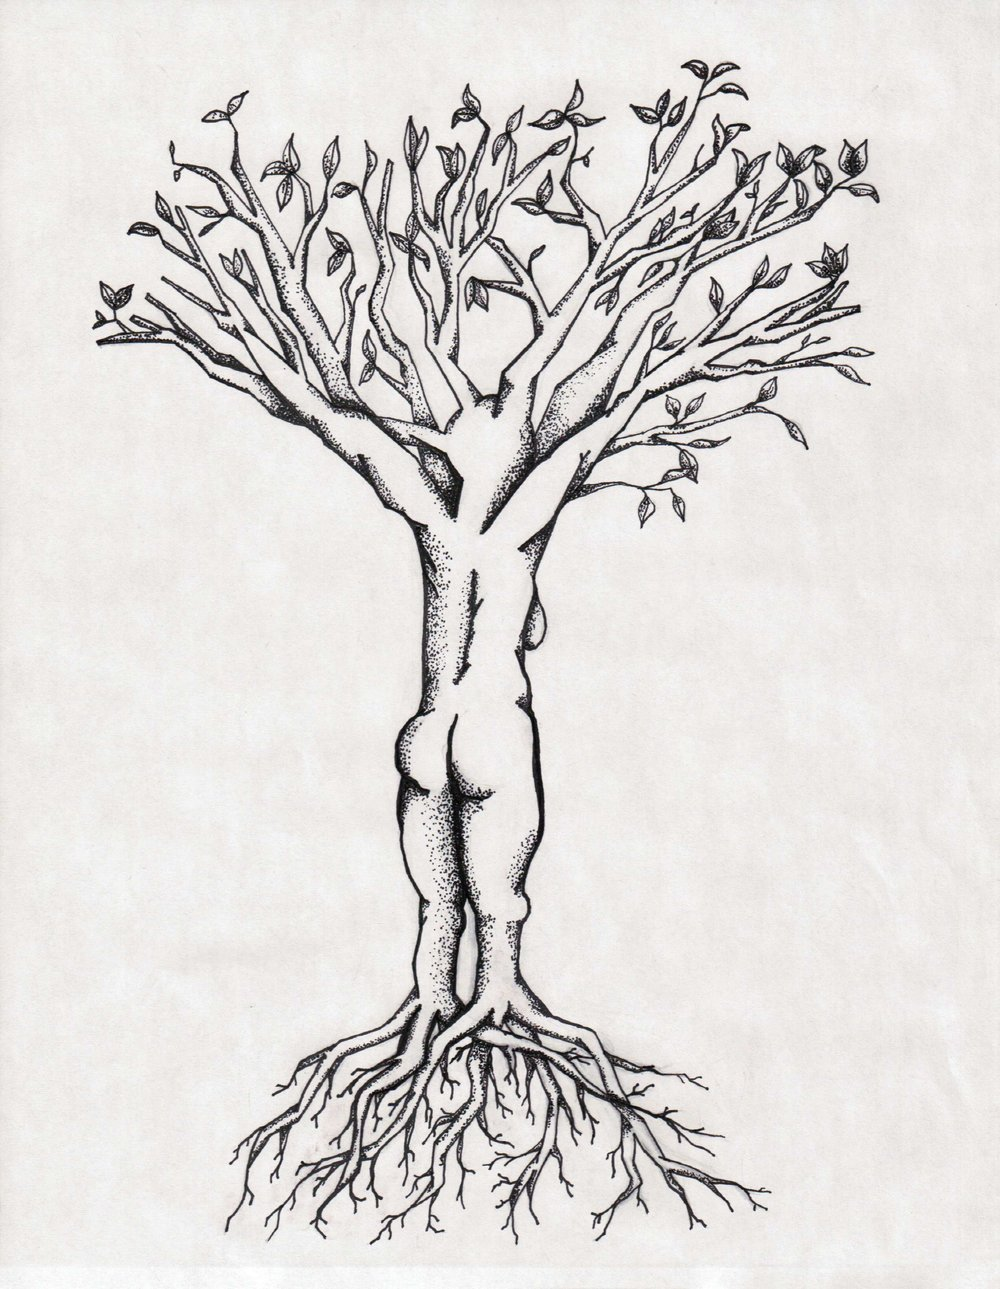 Tree_Woman_Ink_Drawing.JPG